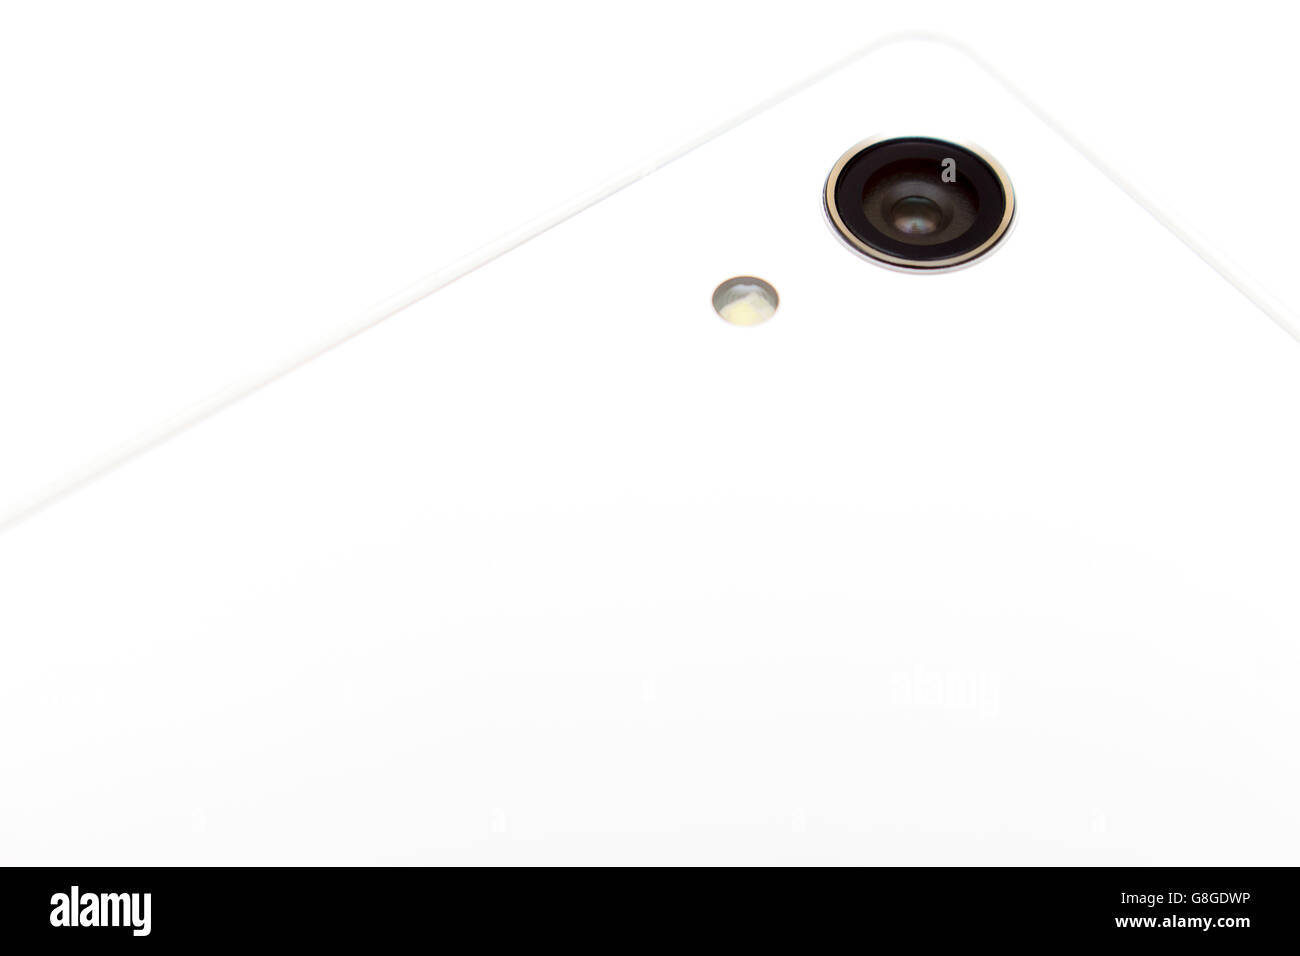 Minimalistic detail of smartphone camera - Stock Image